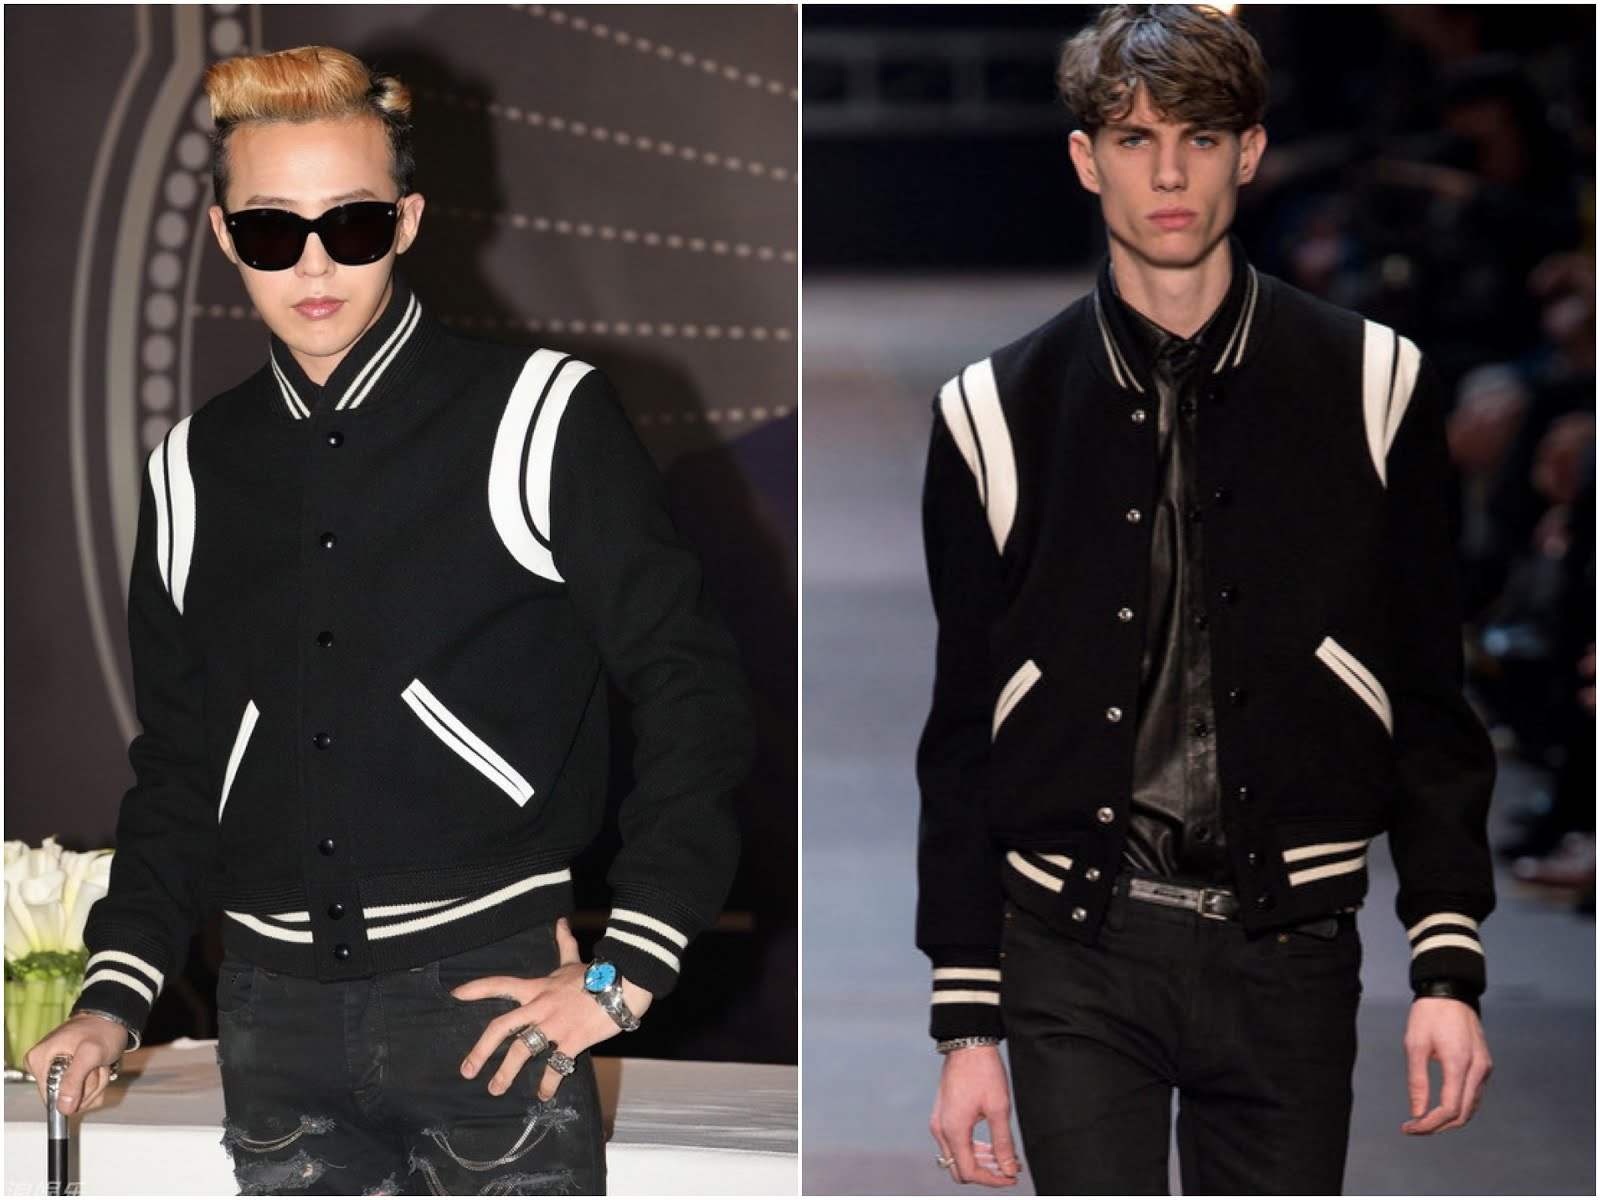 00O00 Menswear Blog: South Korean artiste G-Dragon from BigBang in Saint Laurent Menswear Fall Winter 2013 - Beijing Press Conference